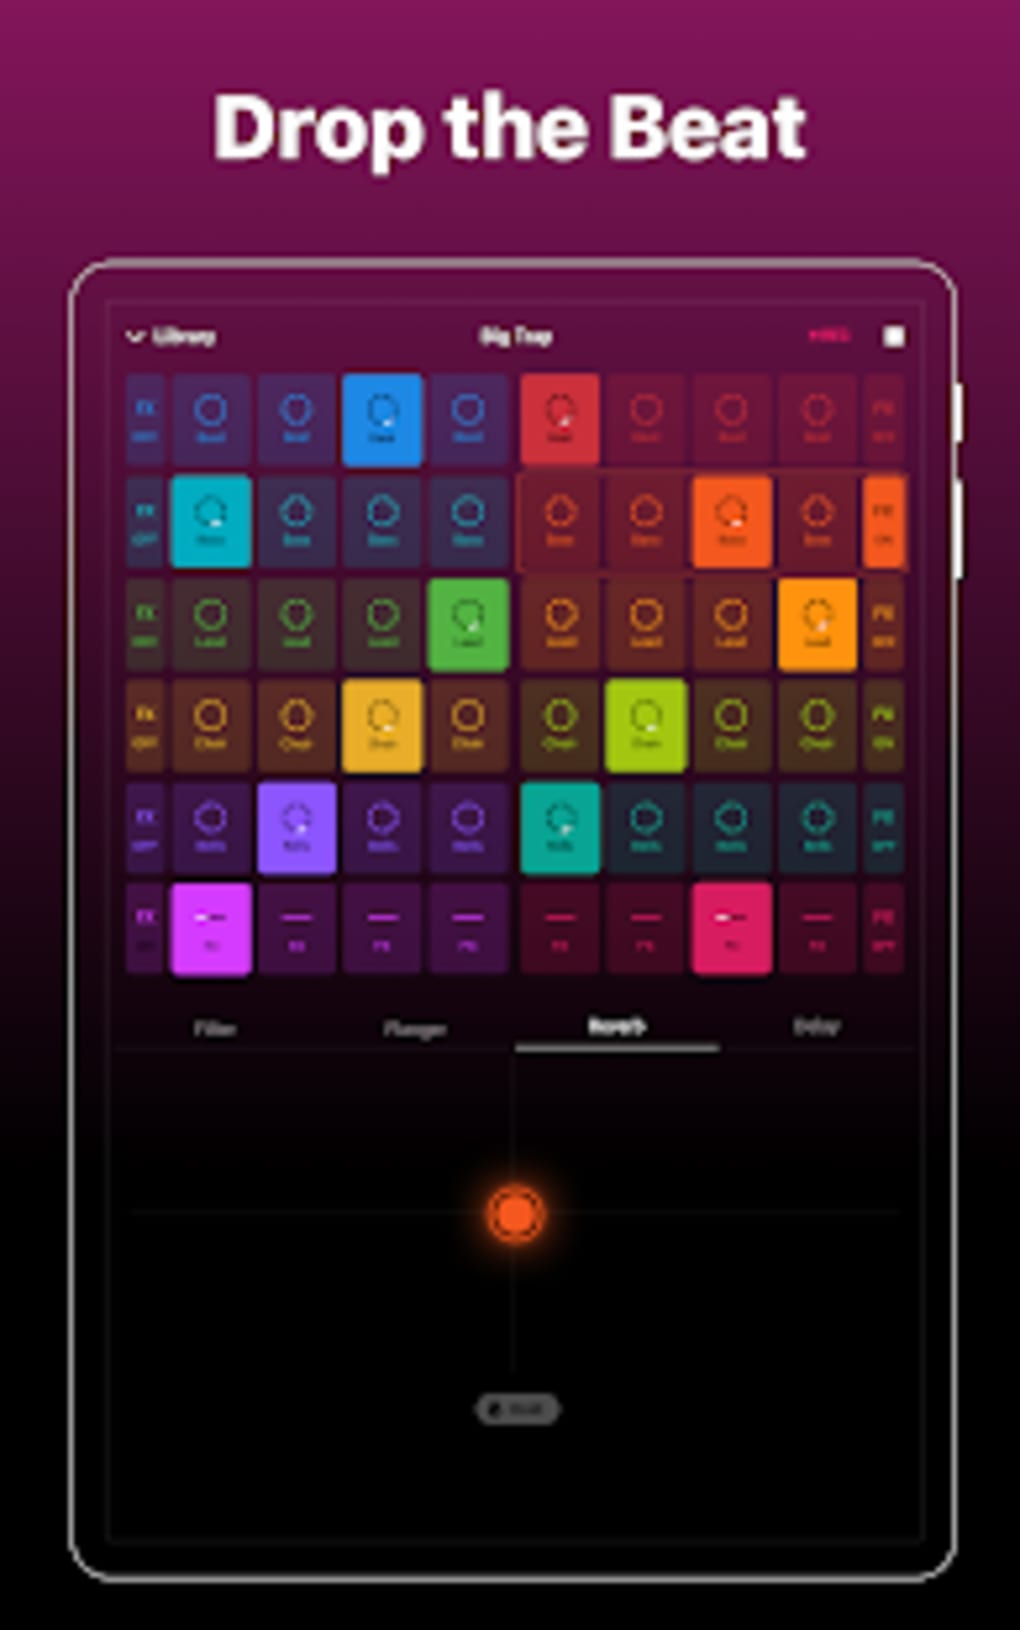 Groovepad - Music Beat Maker for Android - Download